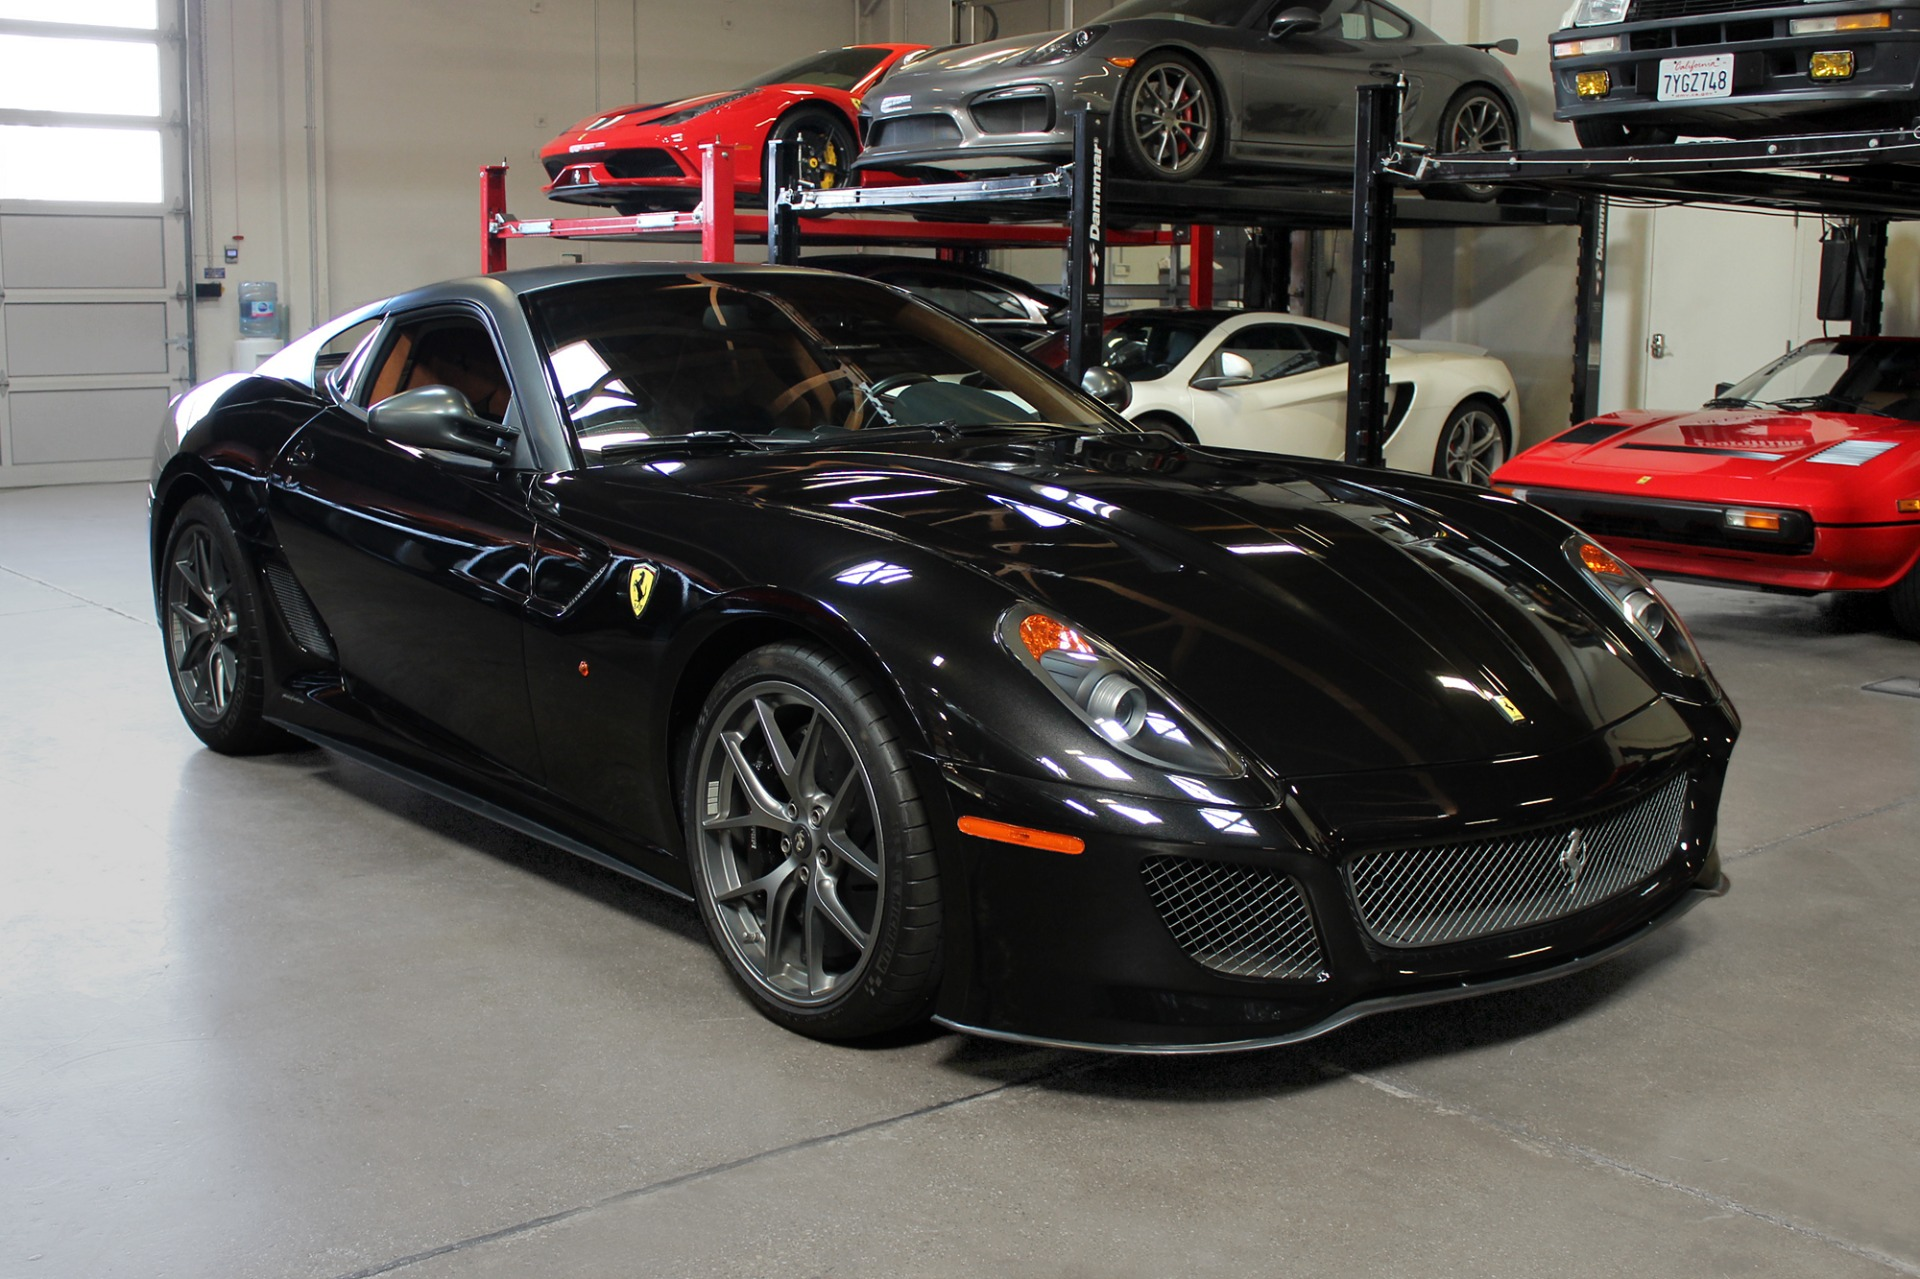 Used 2011 Ferrari 599 GTO for sale $549,995 at San Francisco Sports Cars in San Carlos CA 94070 1